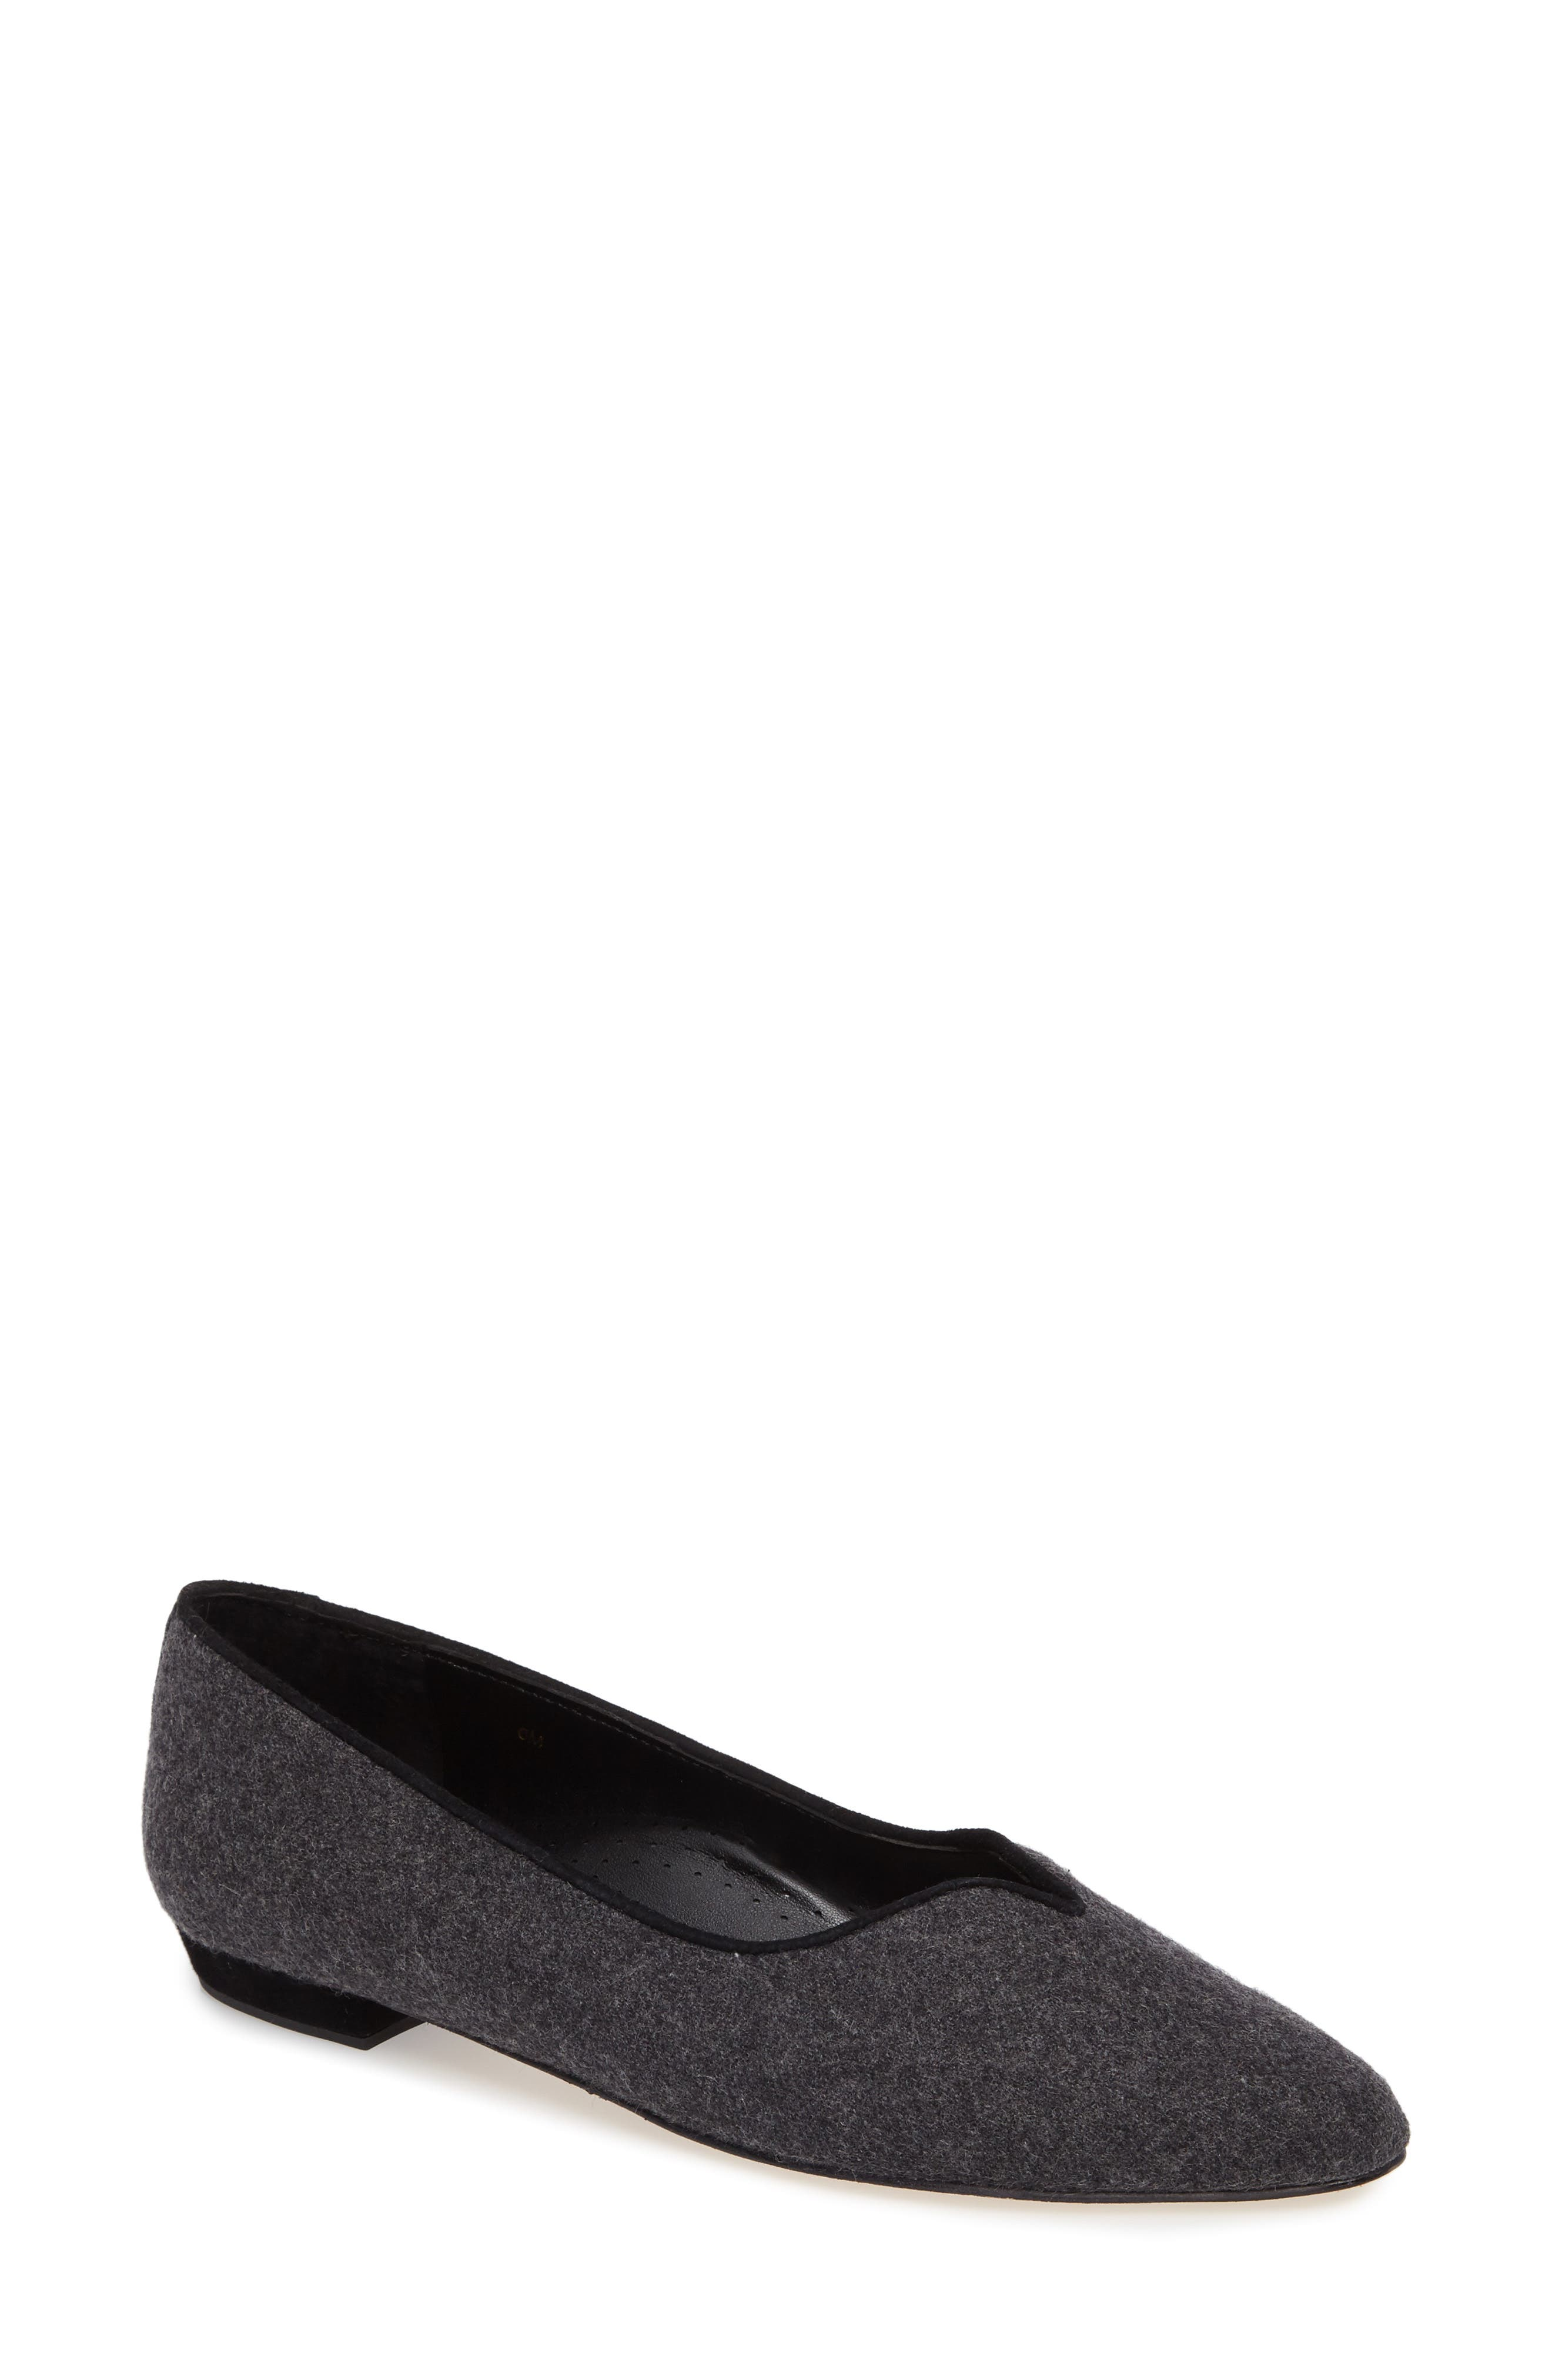 Alternate Image 1 Selected - VANELi 'Ganet' Pointy Toe Flat (Women)